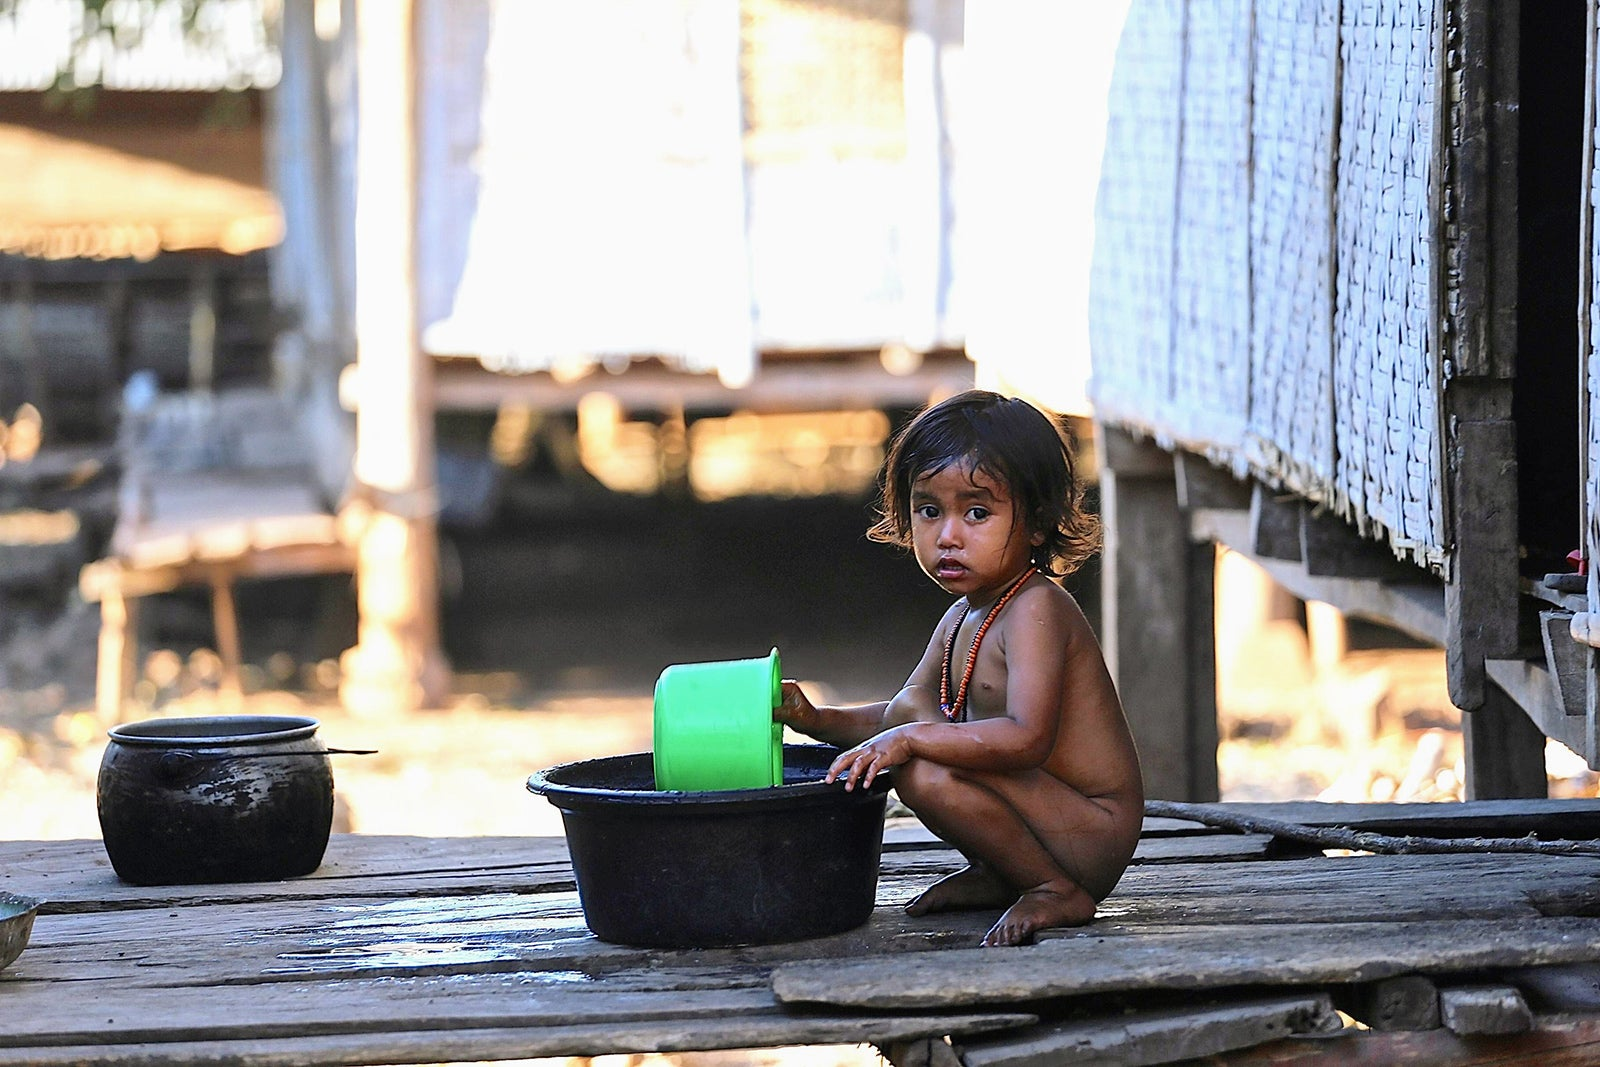 A child in a village in rural Indonesia. Credit: EOCRU.